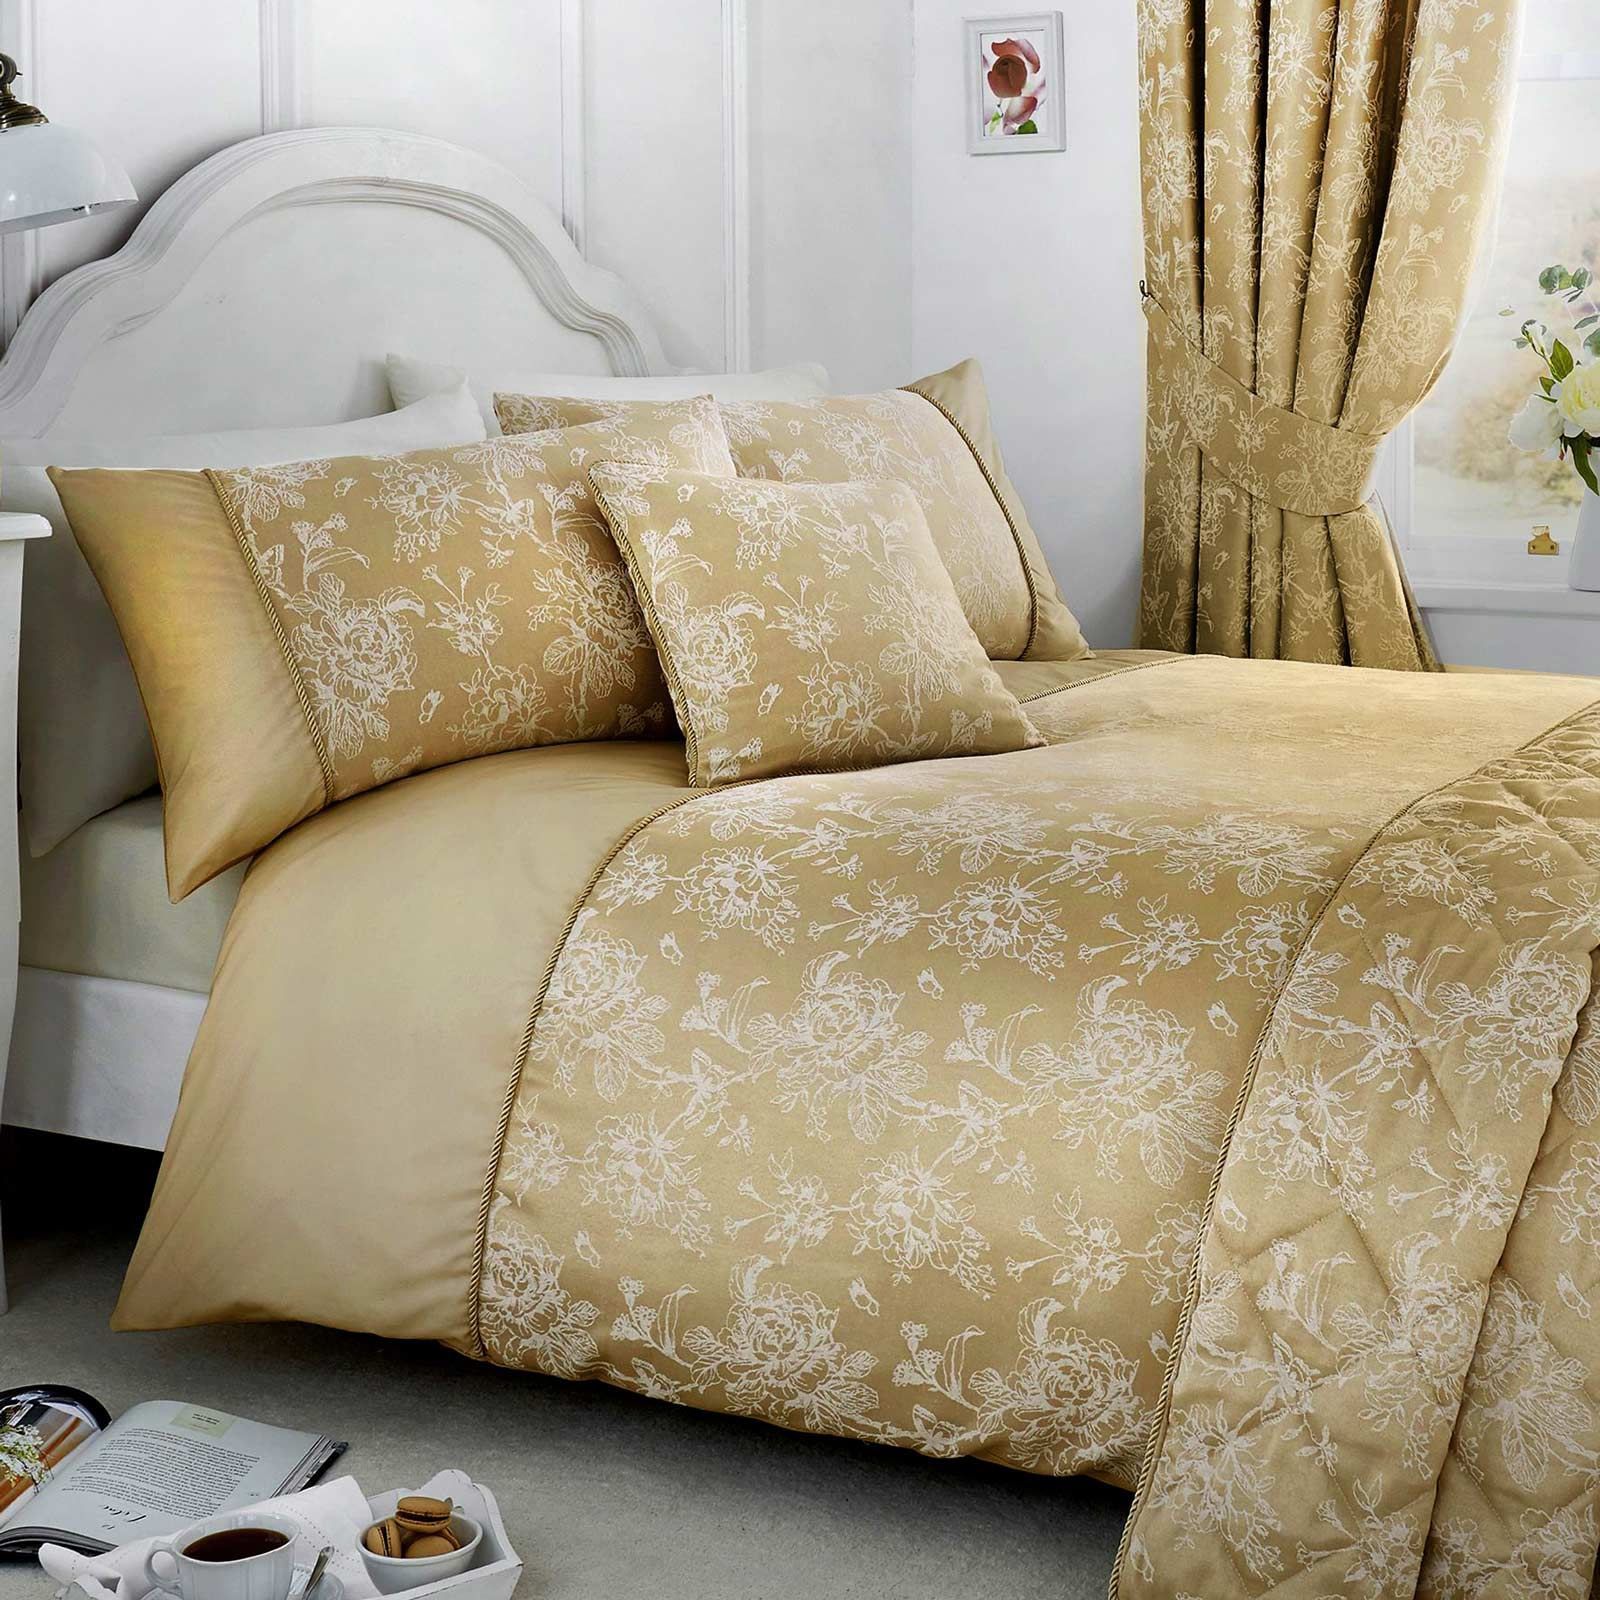 Gold Duvet Covers Floral Jacquard Damask Champagne Quilt Cover Bedding Sets Ebay